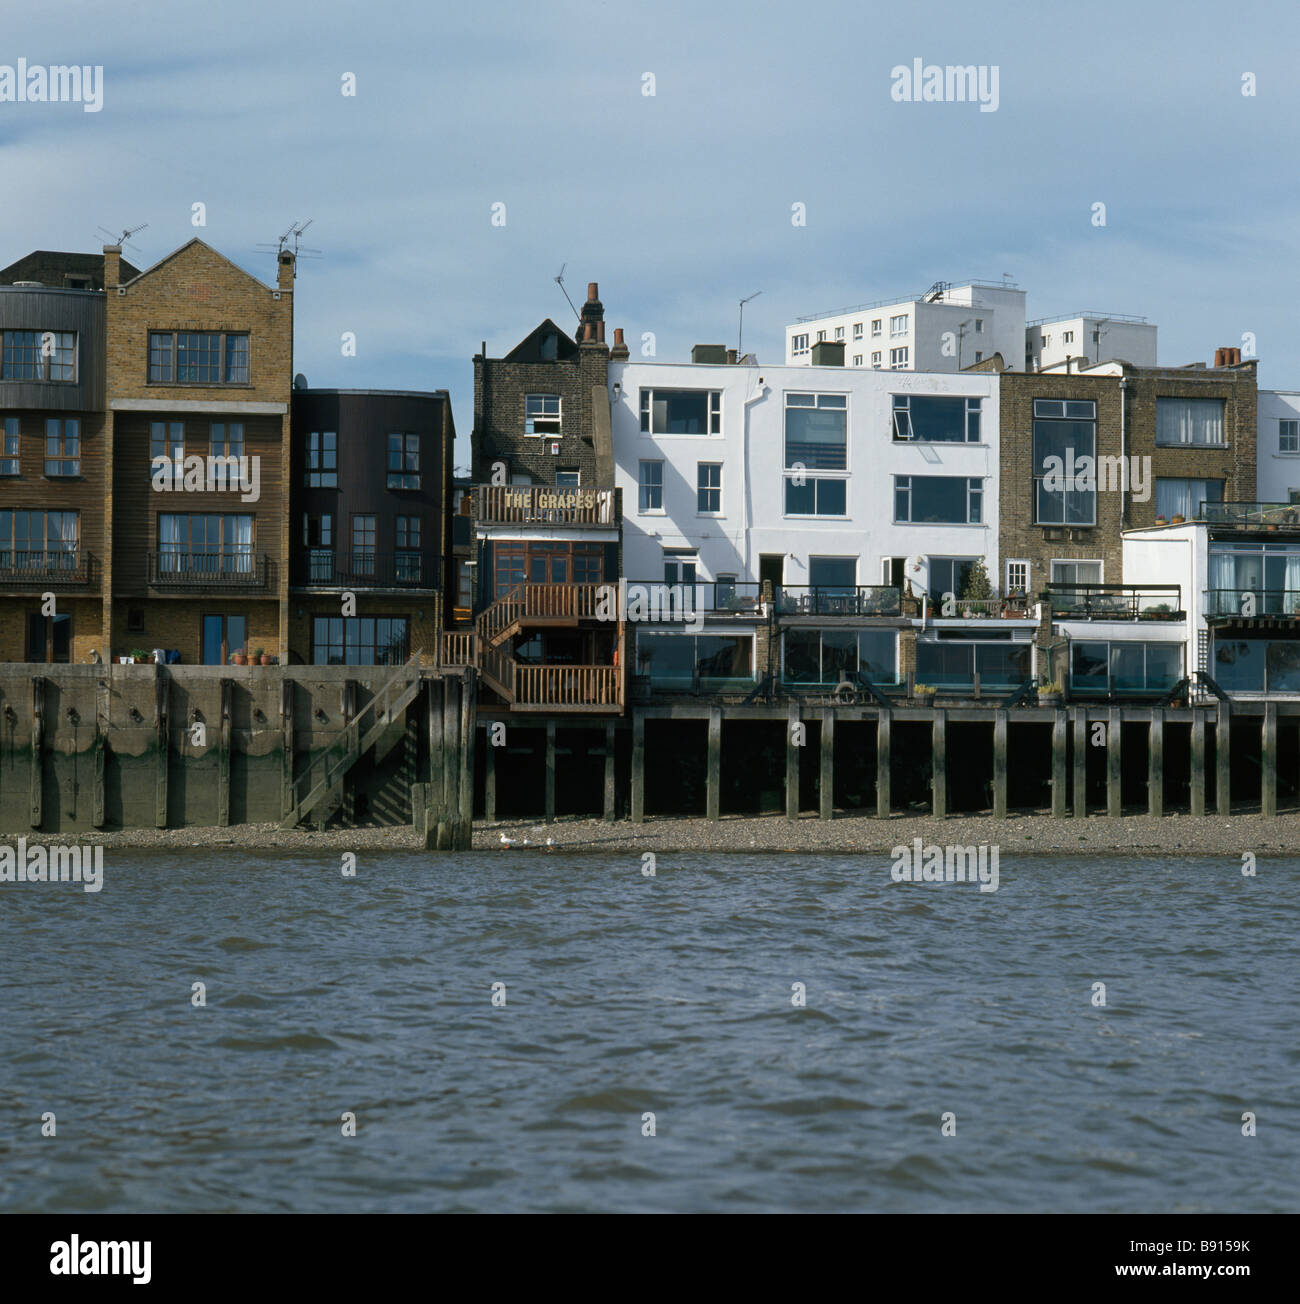 Limehouse: The Grapes - Stock Image